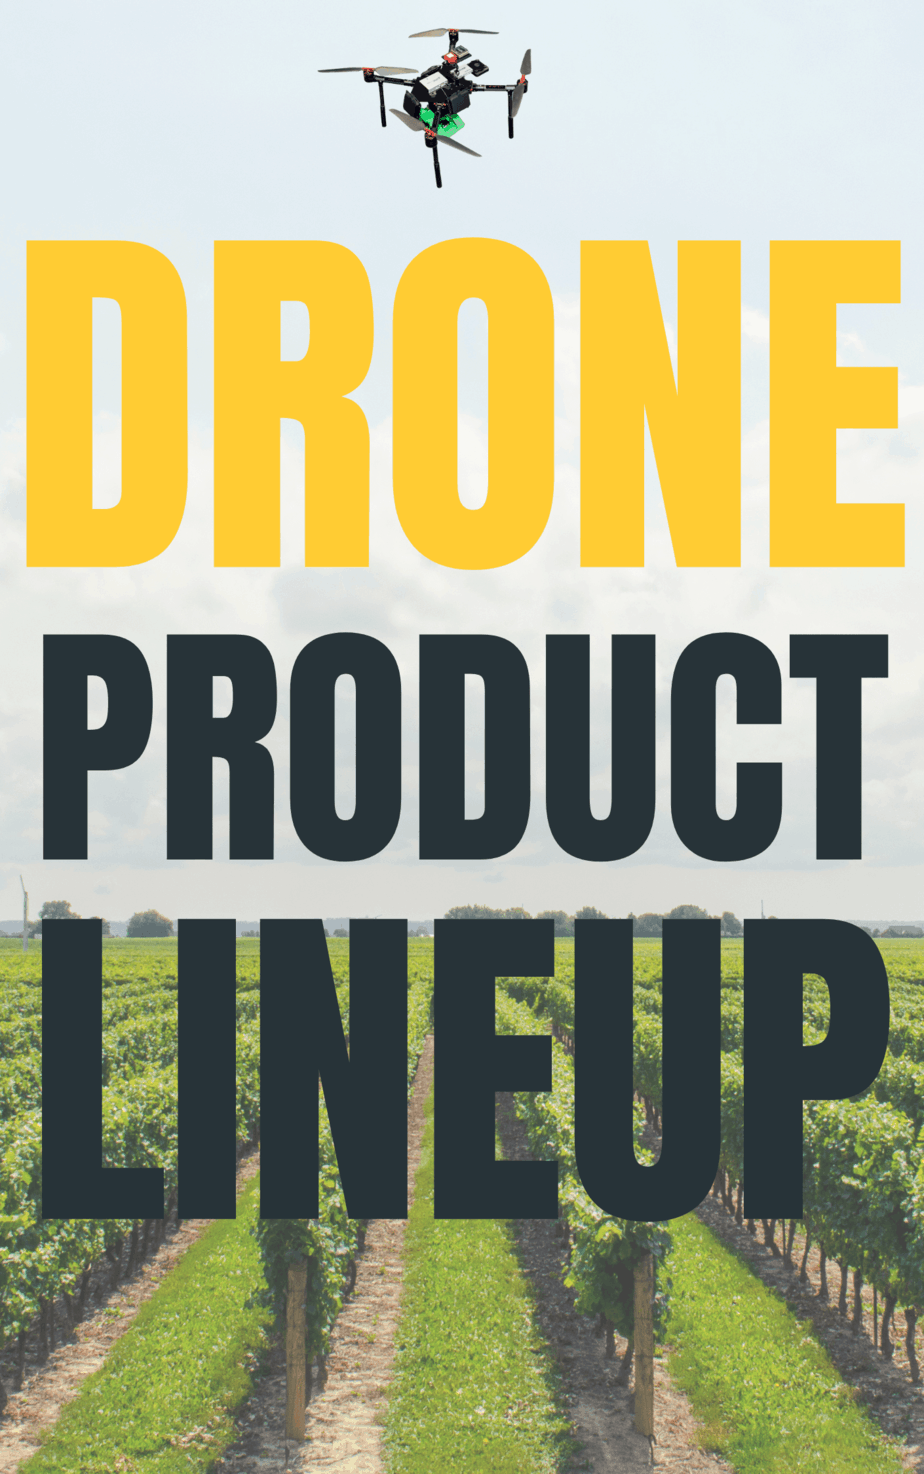 Drone product lineup download (1)